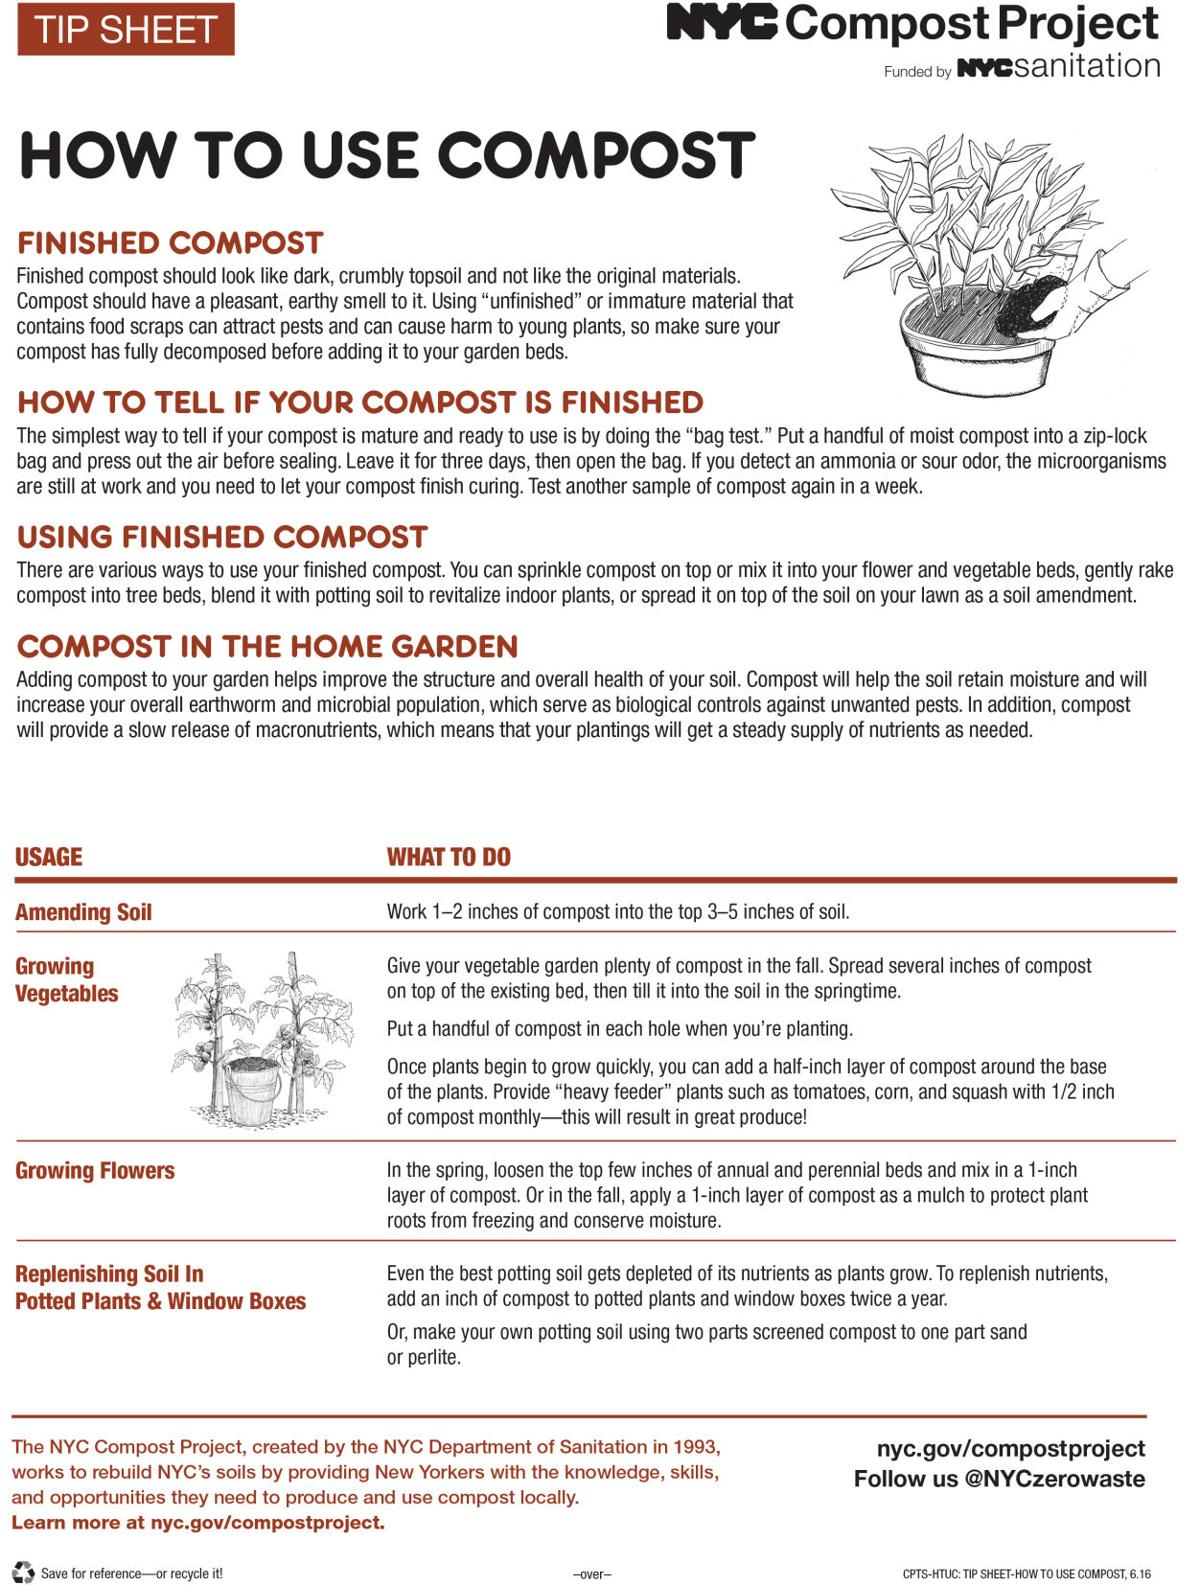 Yard waste helps for productive spring